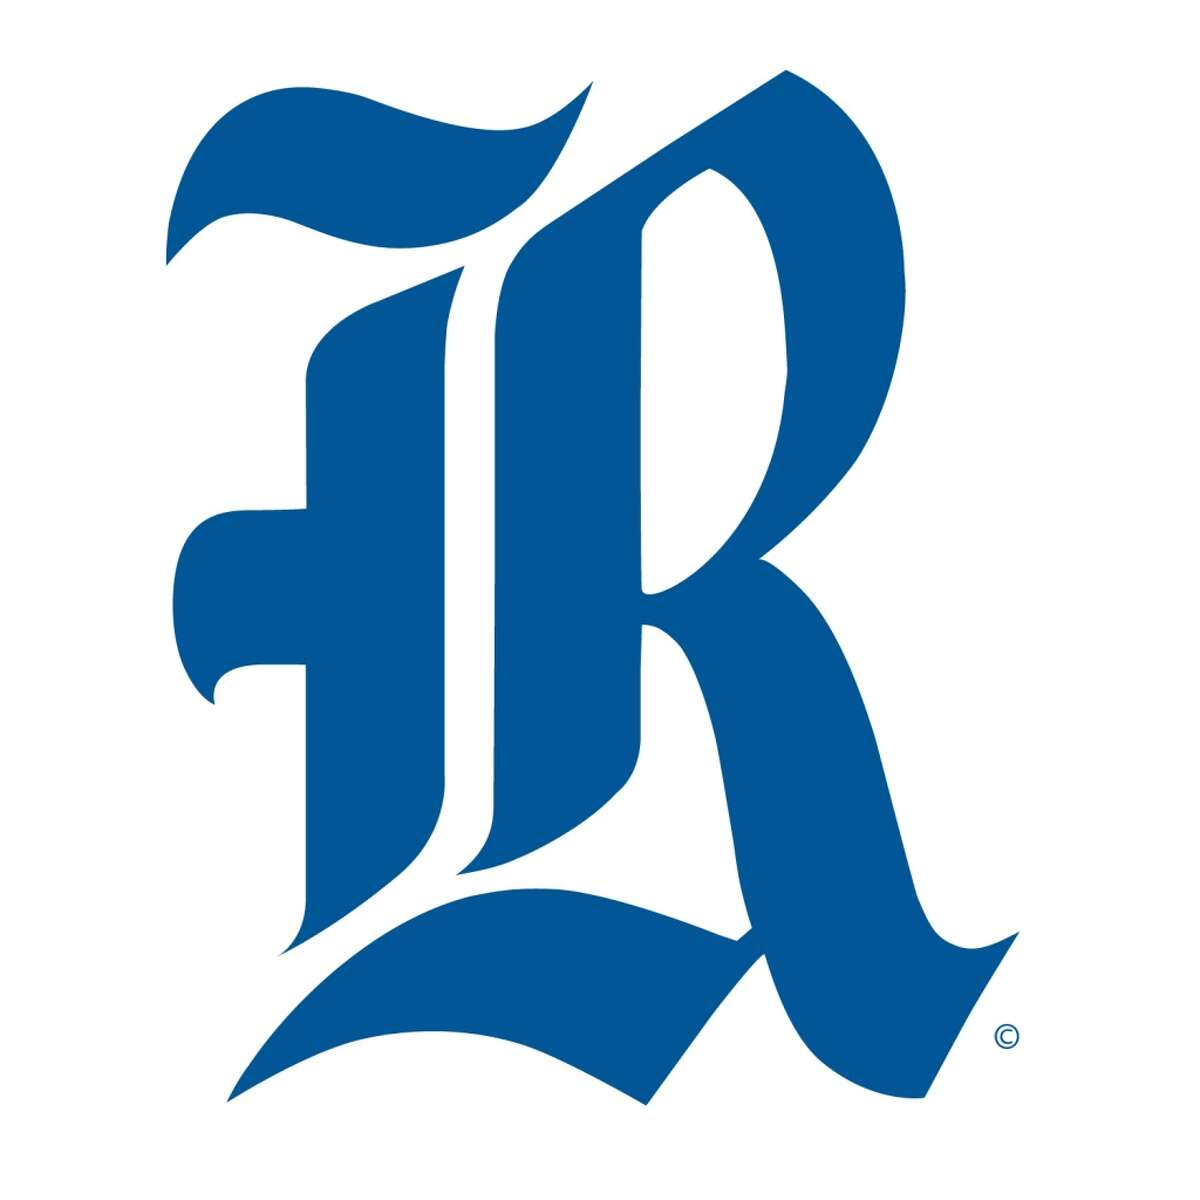 For the third straight weekend, Rice's women's basketball team has had its games postponed, this time by a COVID-19 situation within the Owls program.